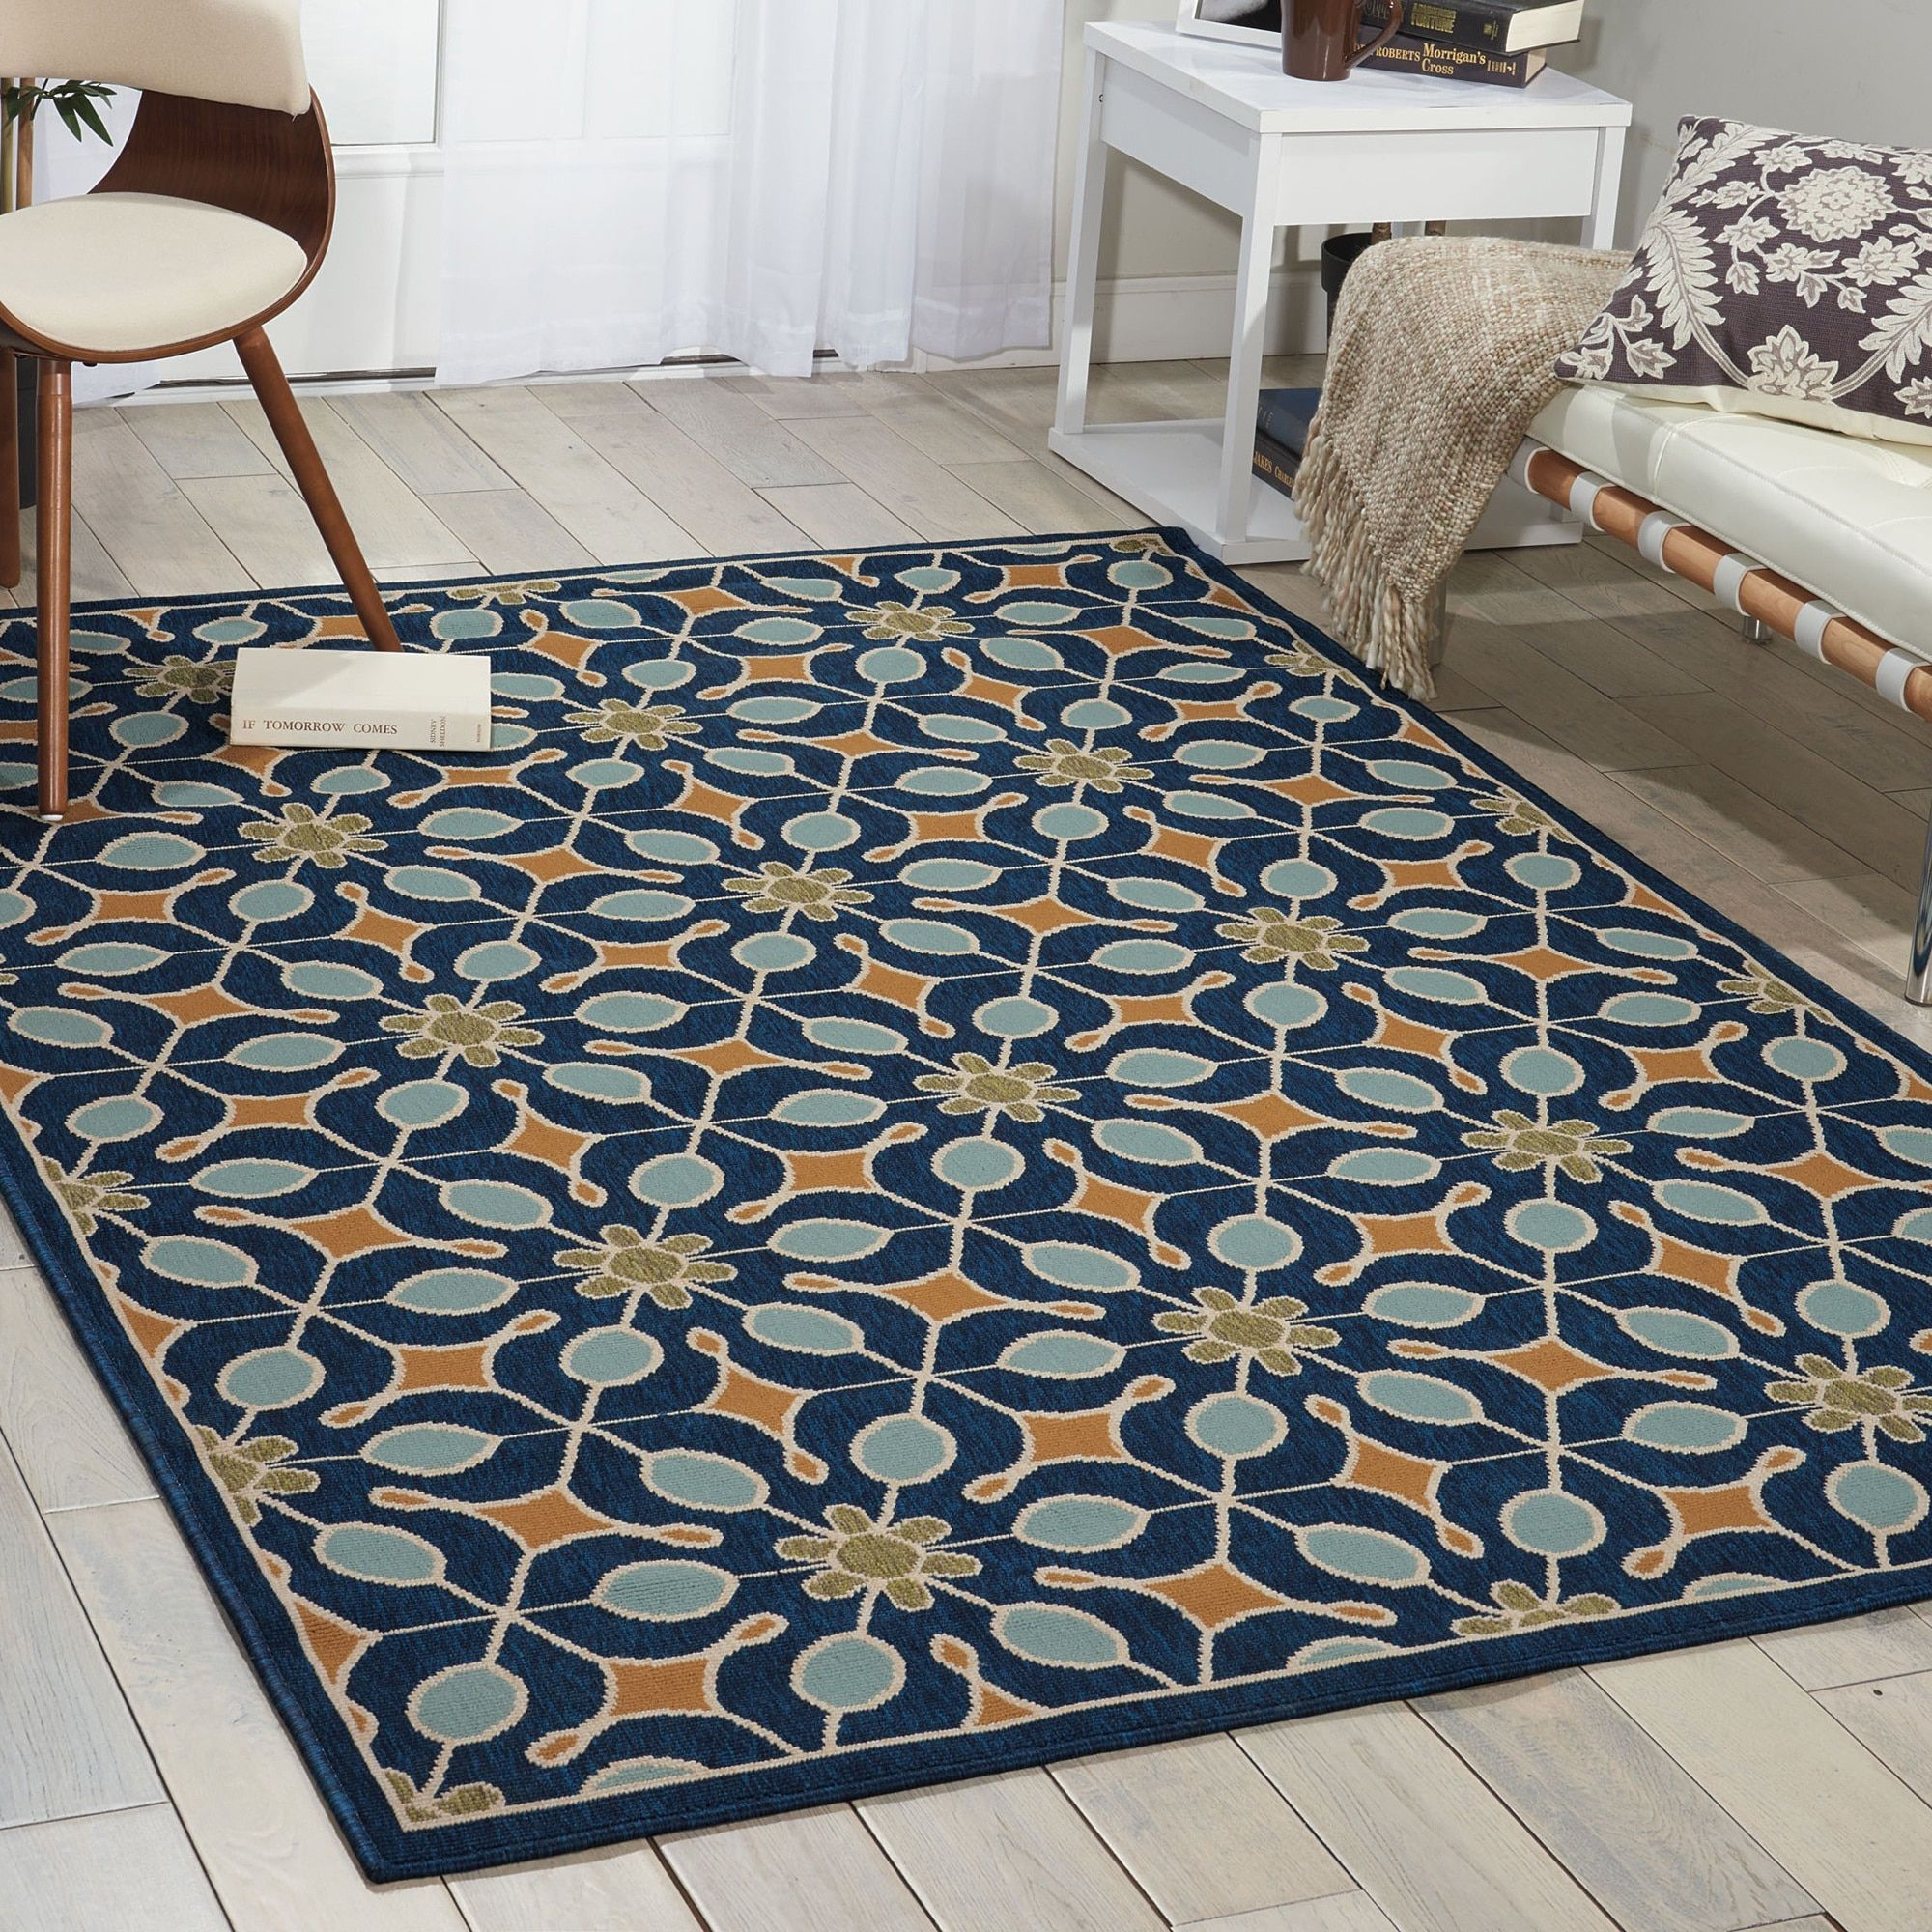 Nourison Caribbean Indoor Outdoor Navy Blue Rug 5 3 X 7 5 5 3